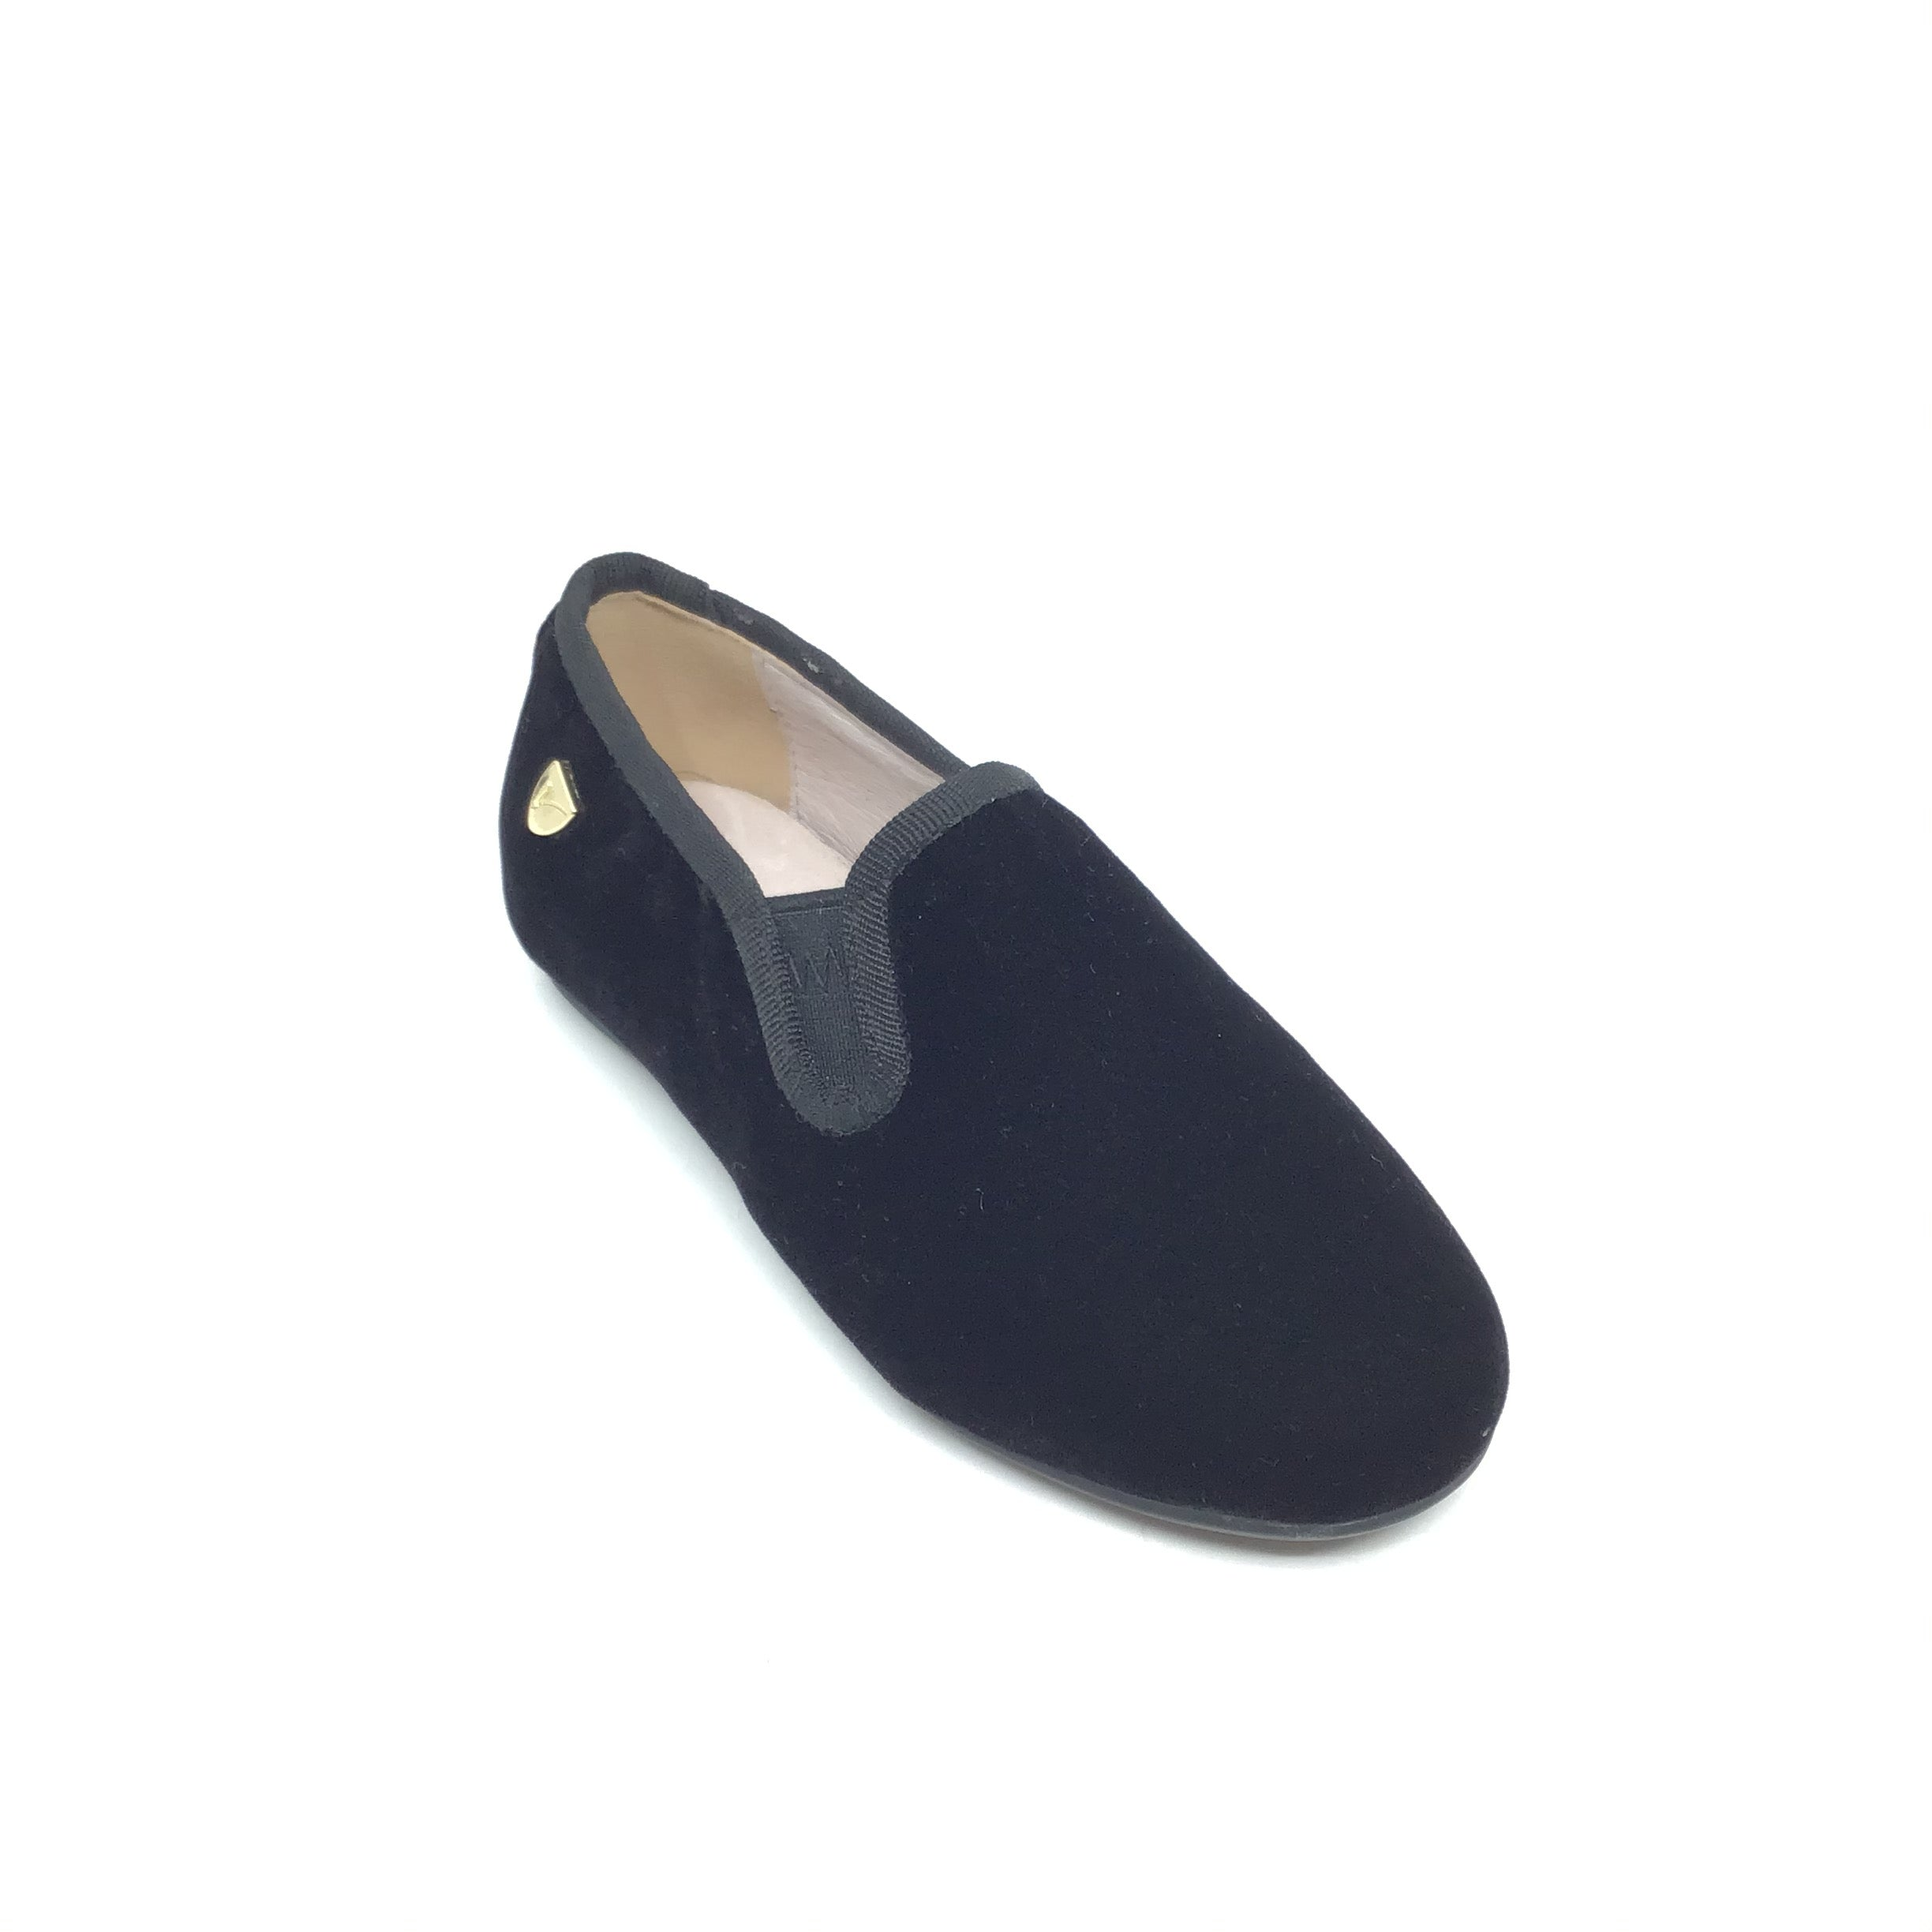 Venettini Black Velvet Shoe